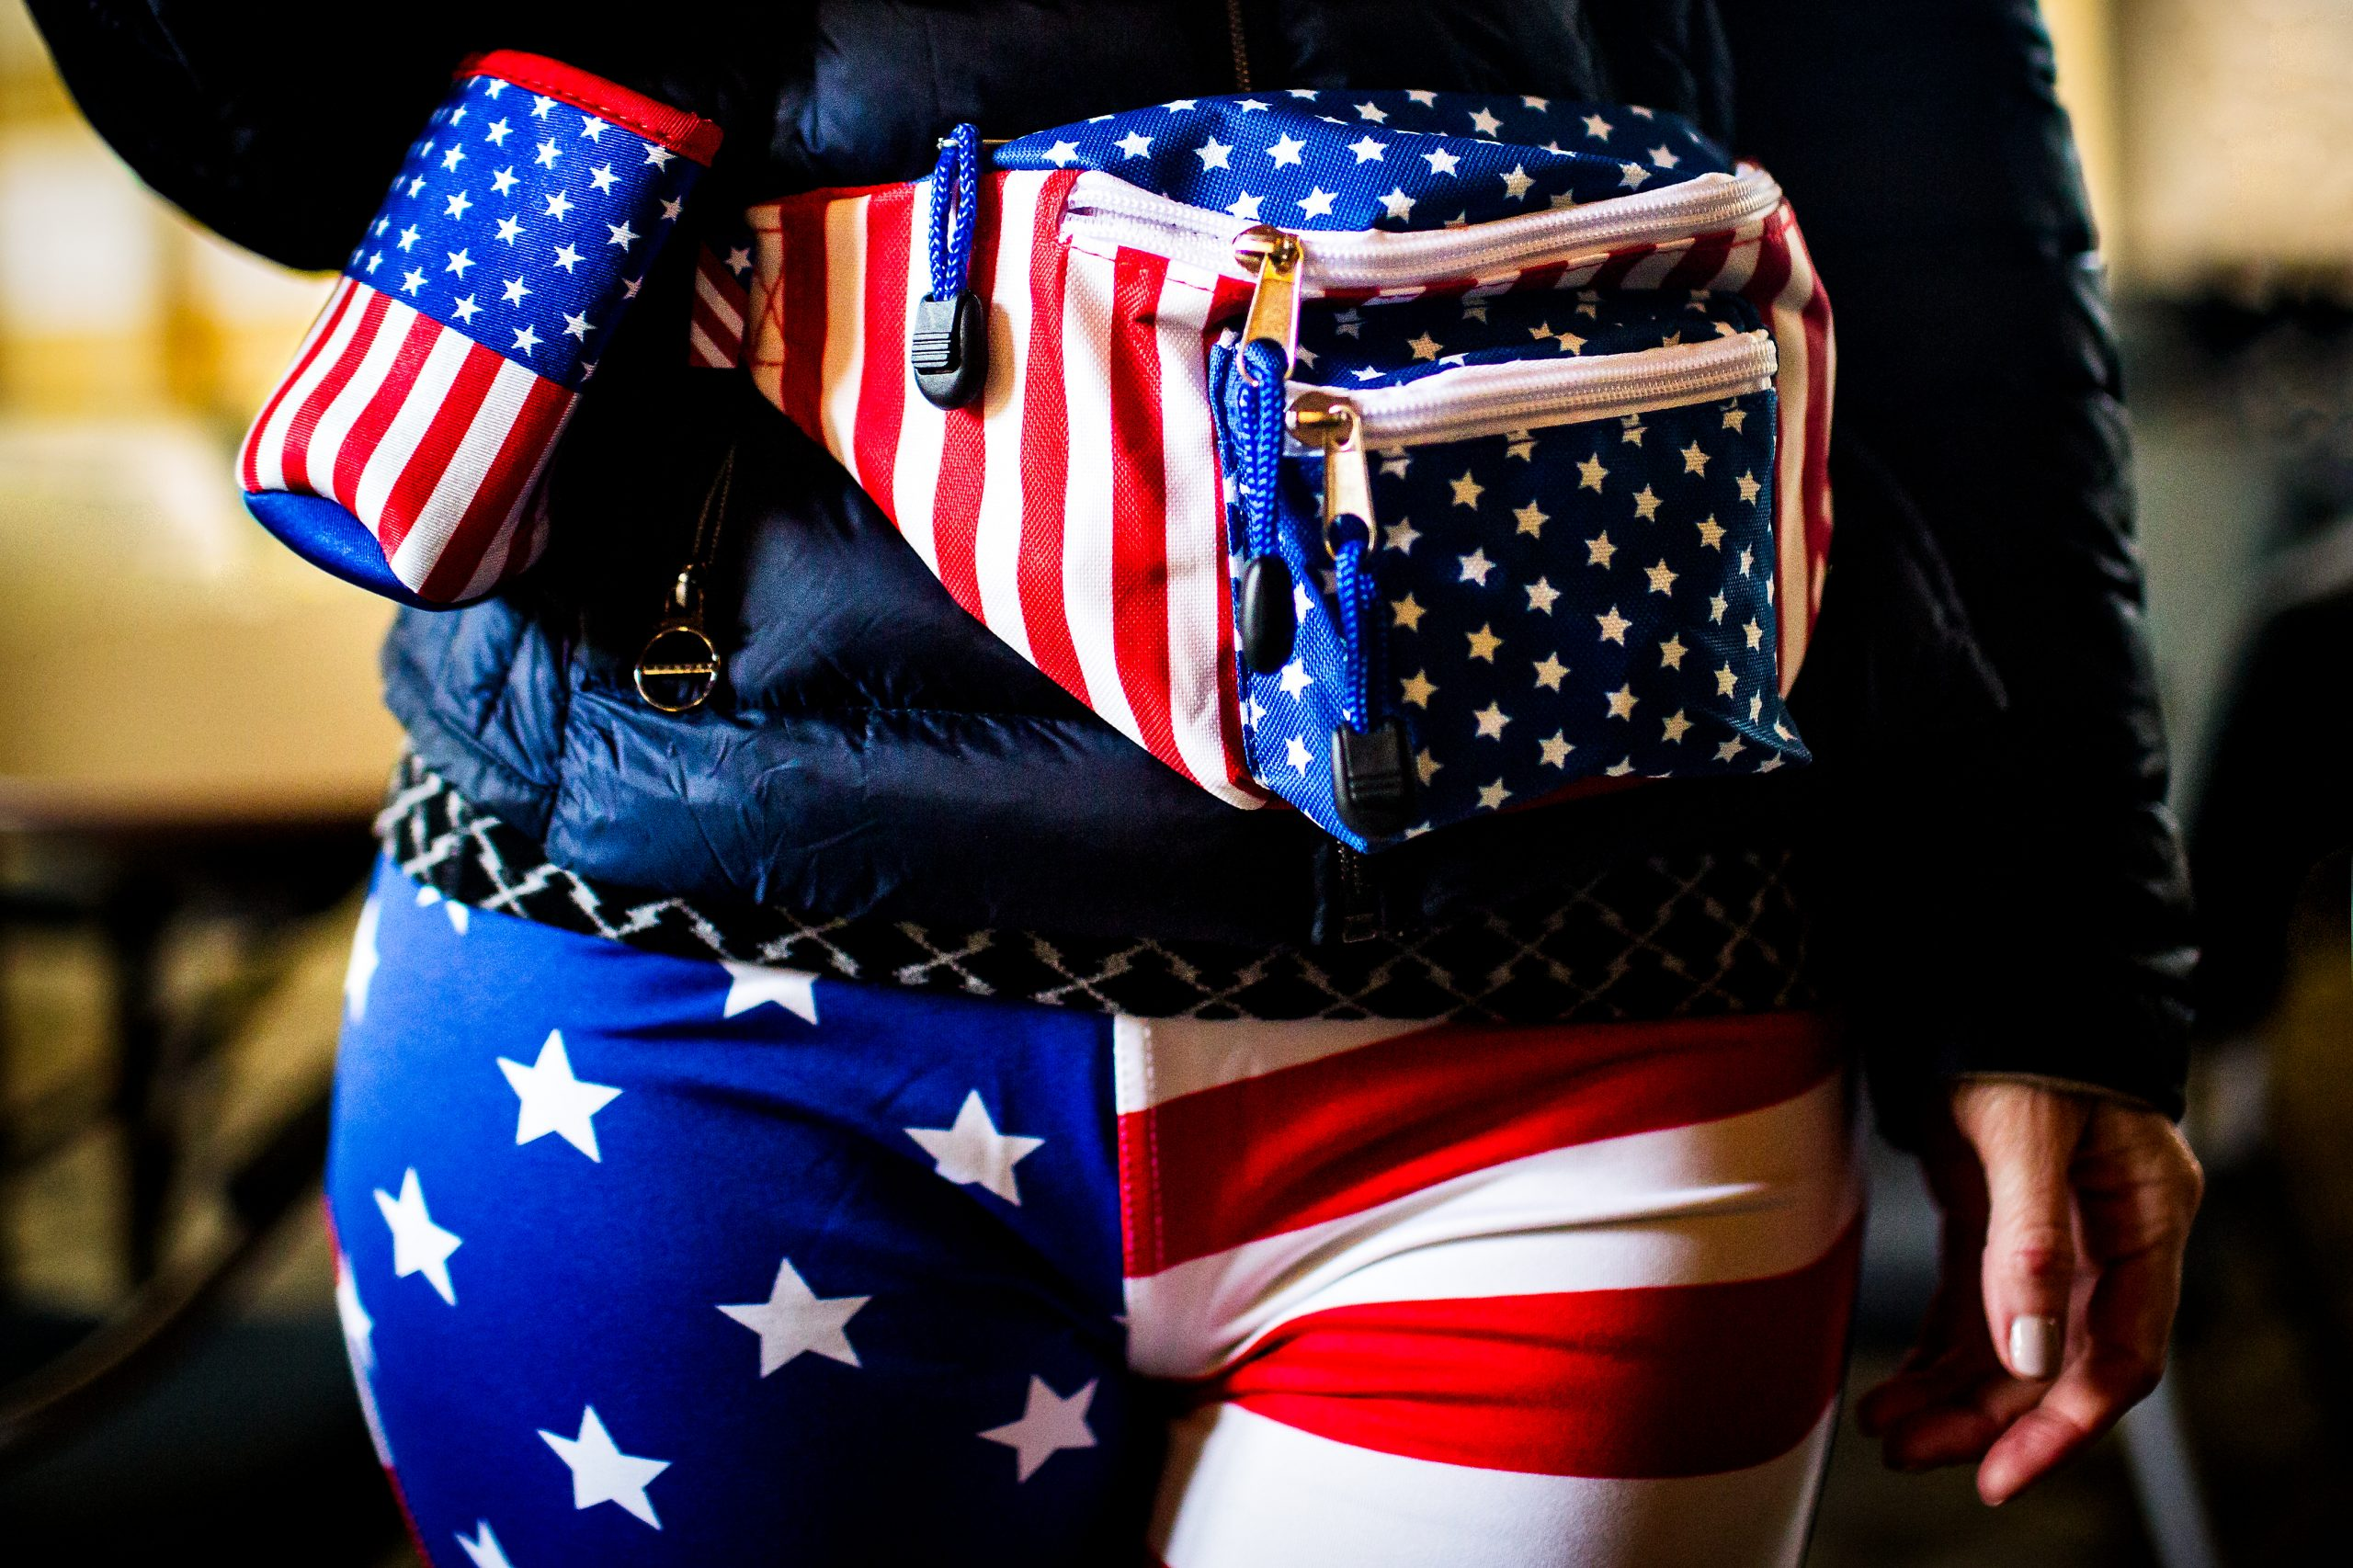 A bride with Stars and Stripes pants and waist bag